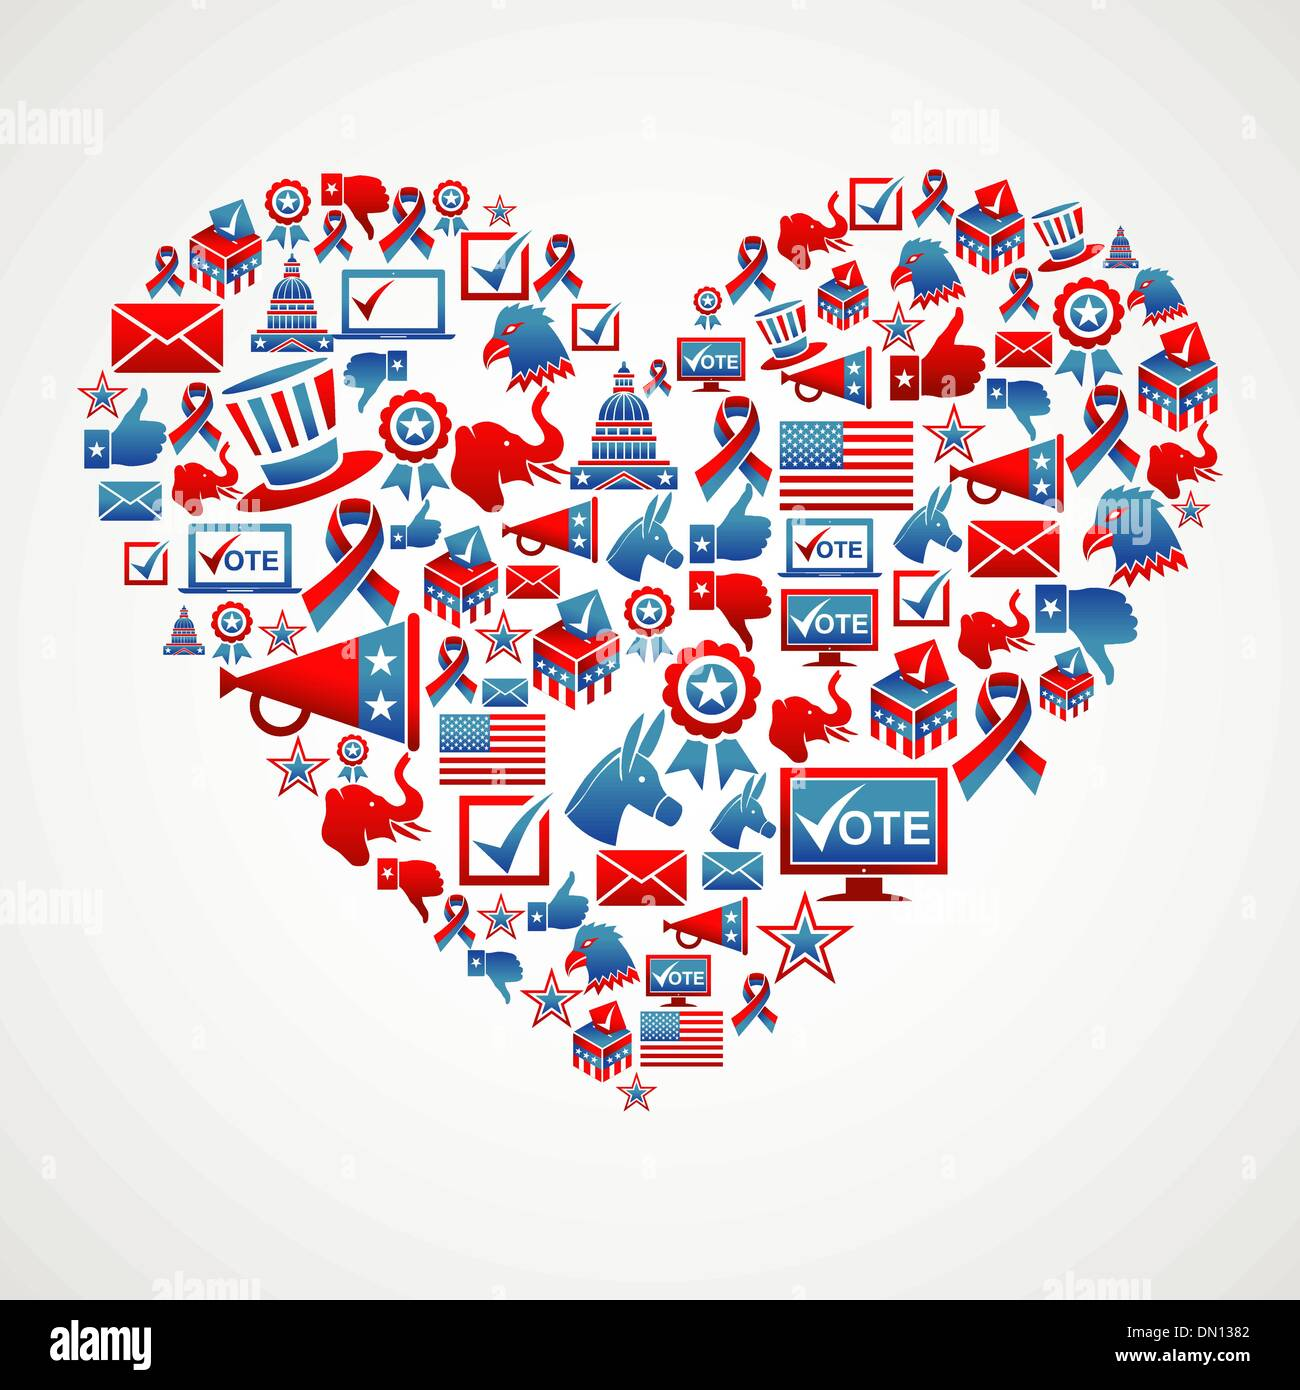 US elections icons heart shape - Stock Image